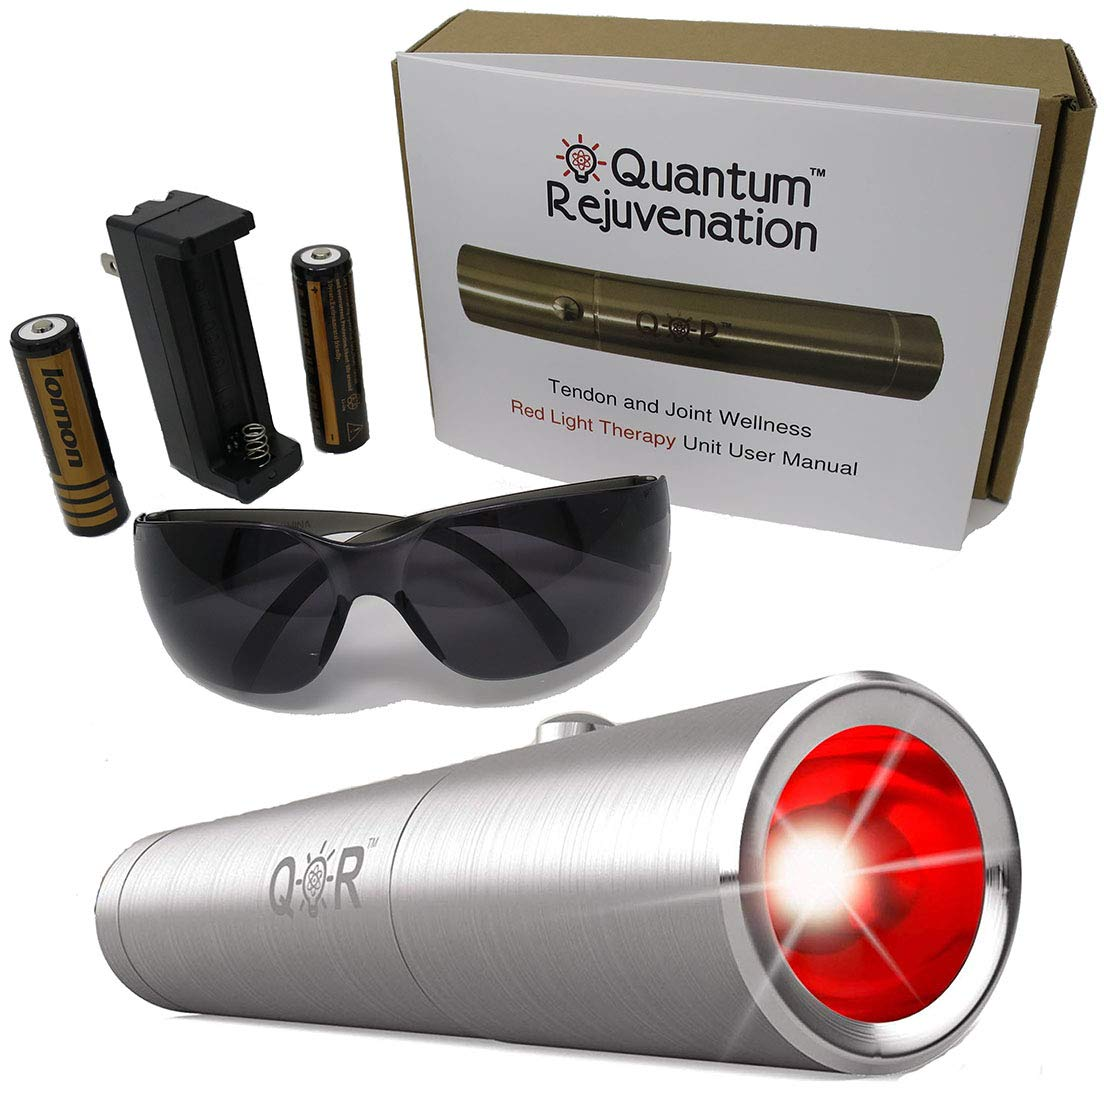 Quantum Rejuvenation Introductory Sale – Red Light Therapy Device – FDA Registered Advanced Pain Relief – Joint Muscle Reliever – Medical Grade